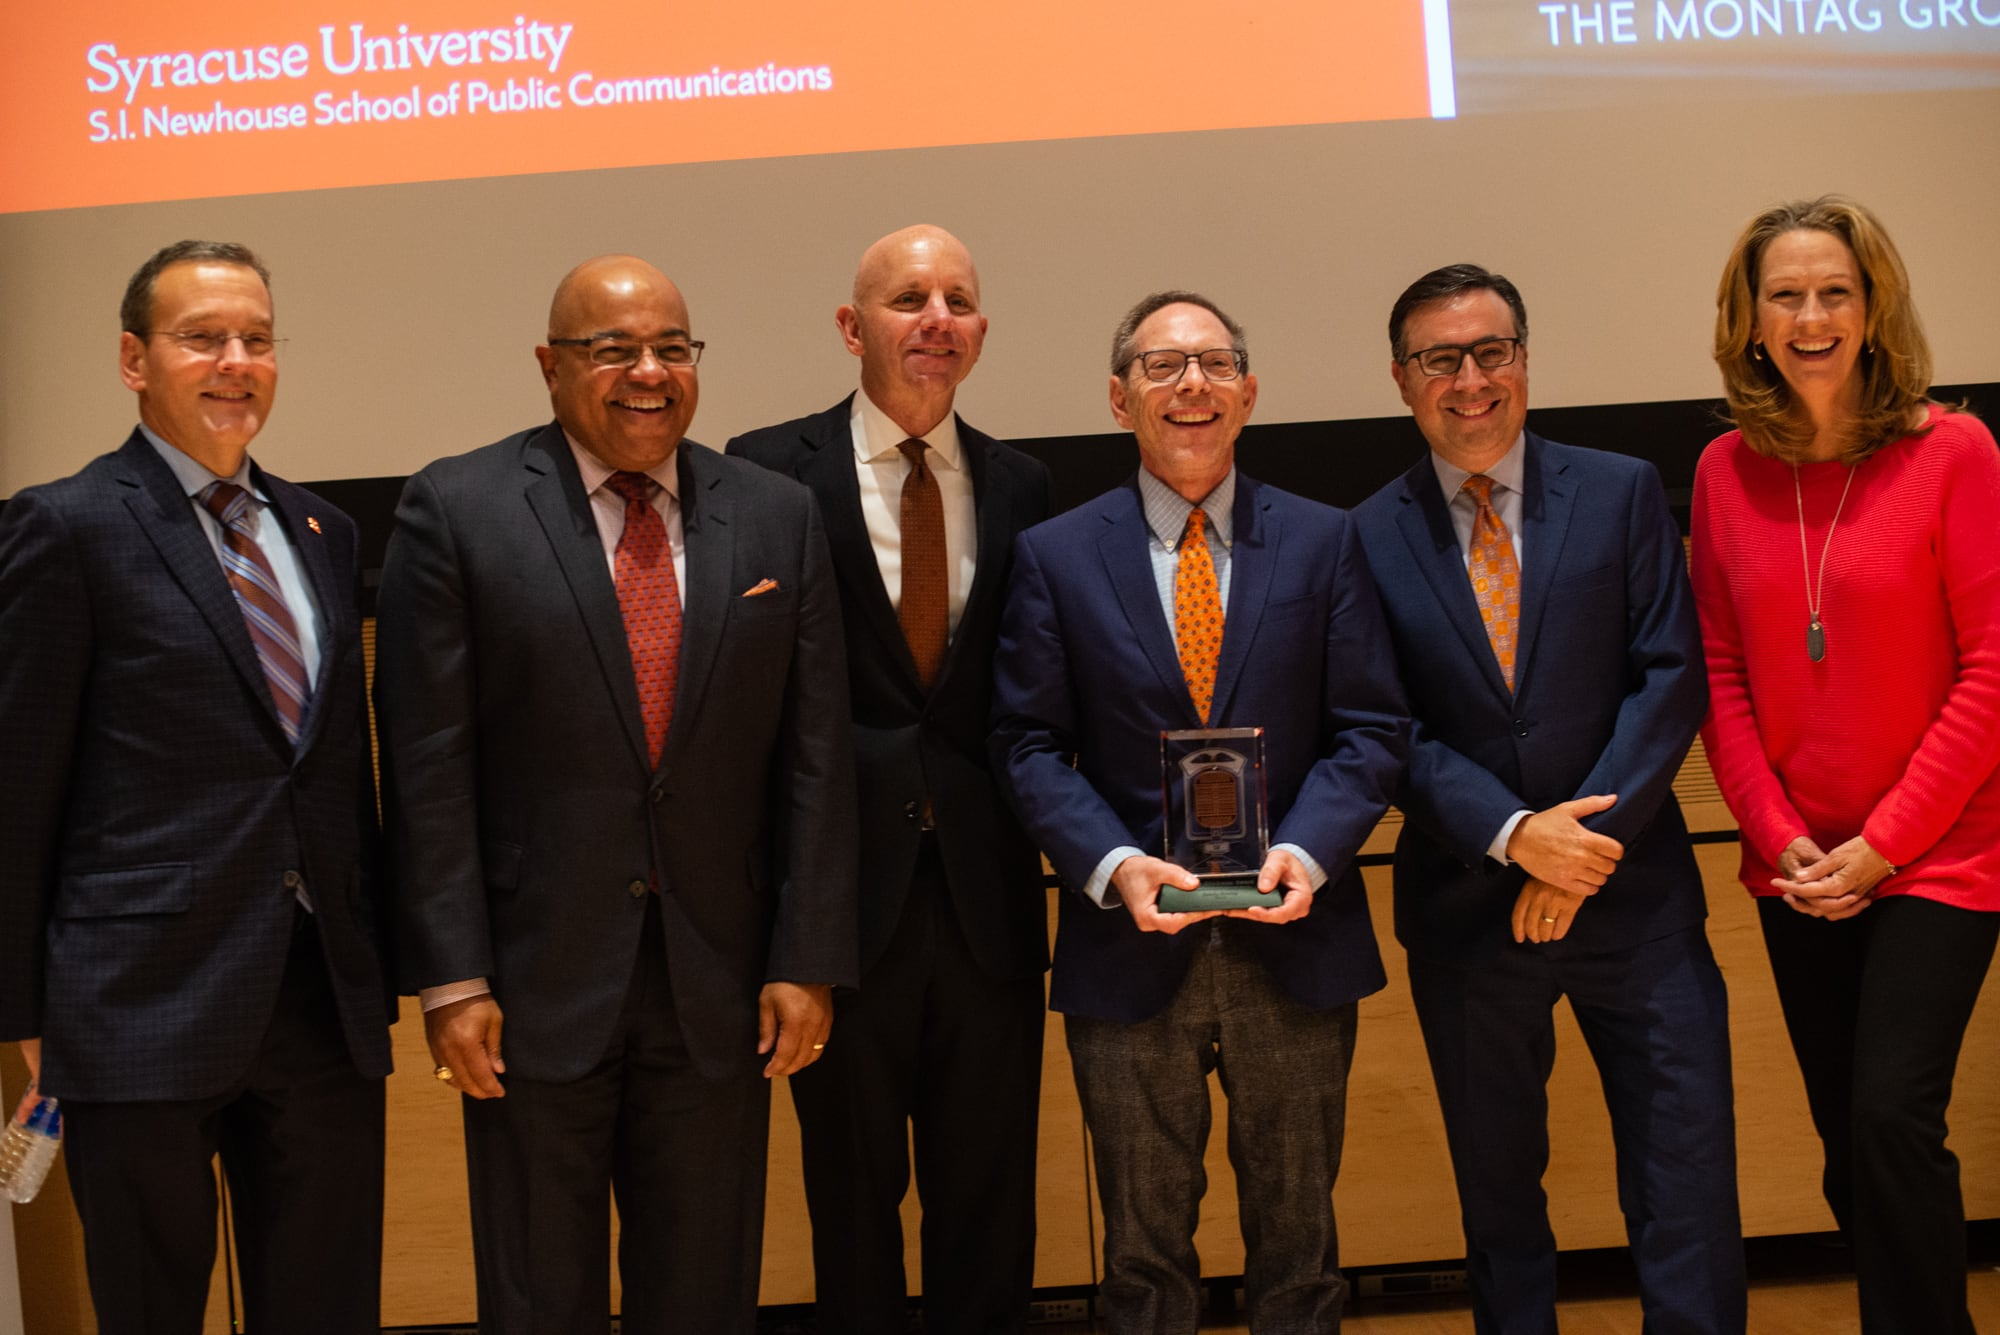 2019 Marty Glickman Award Sandy Montag (third from right) is joined by Syracuse Athletic Director John Wildhack and preview Glickman winners Mike Tirico, Sean McDonough, Ian Eagle and Beth Mowins.